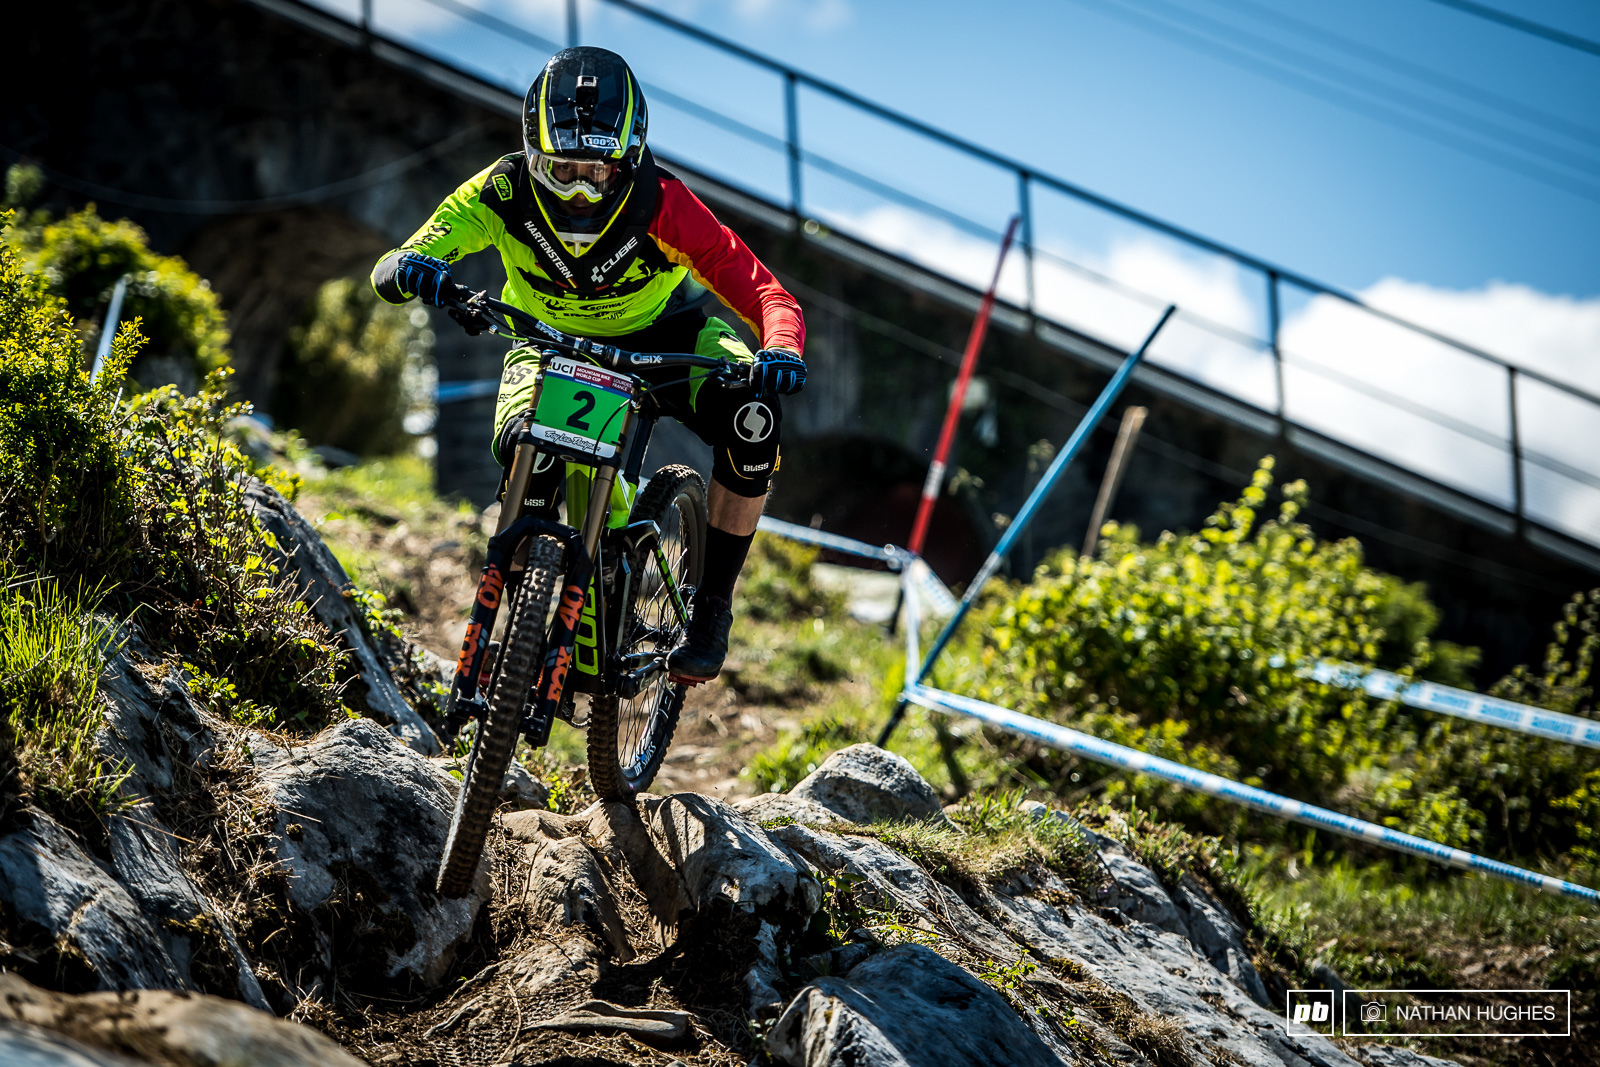 Cube s young gun Harternstern getting amongst it his first time on the Lourdes rock.